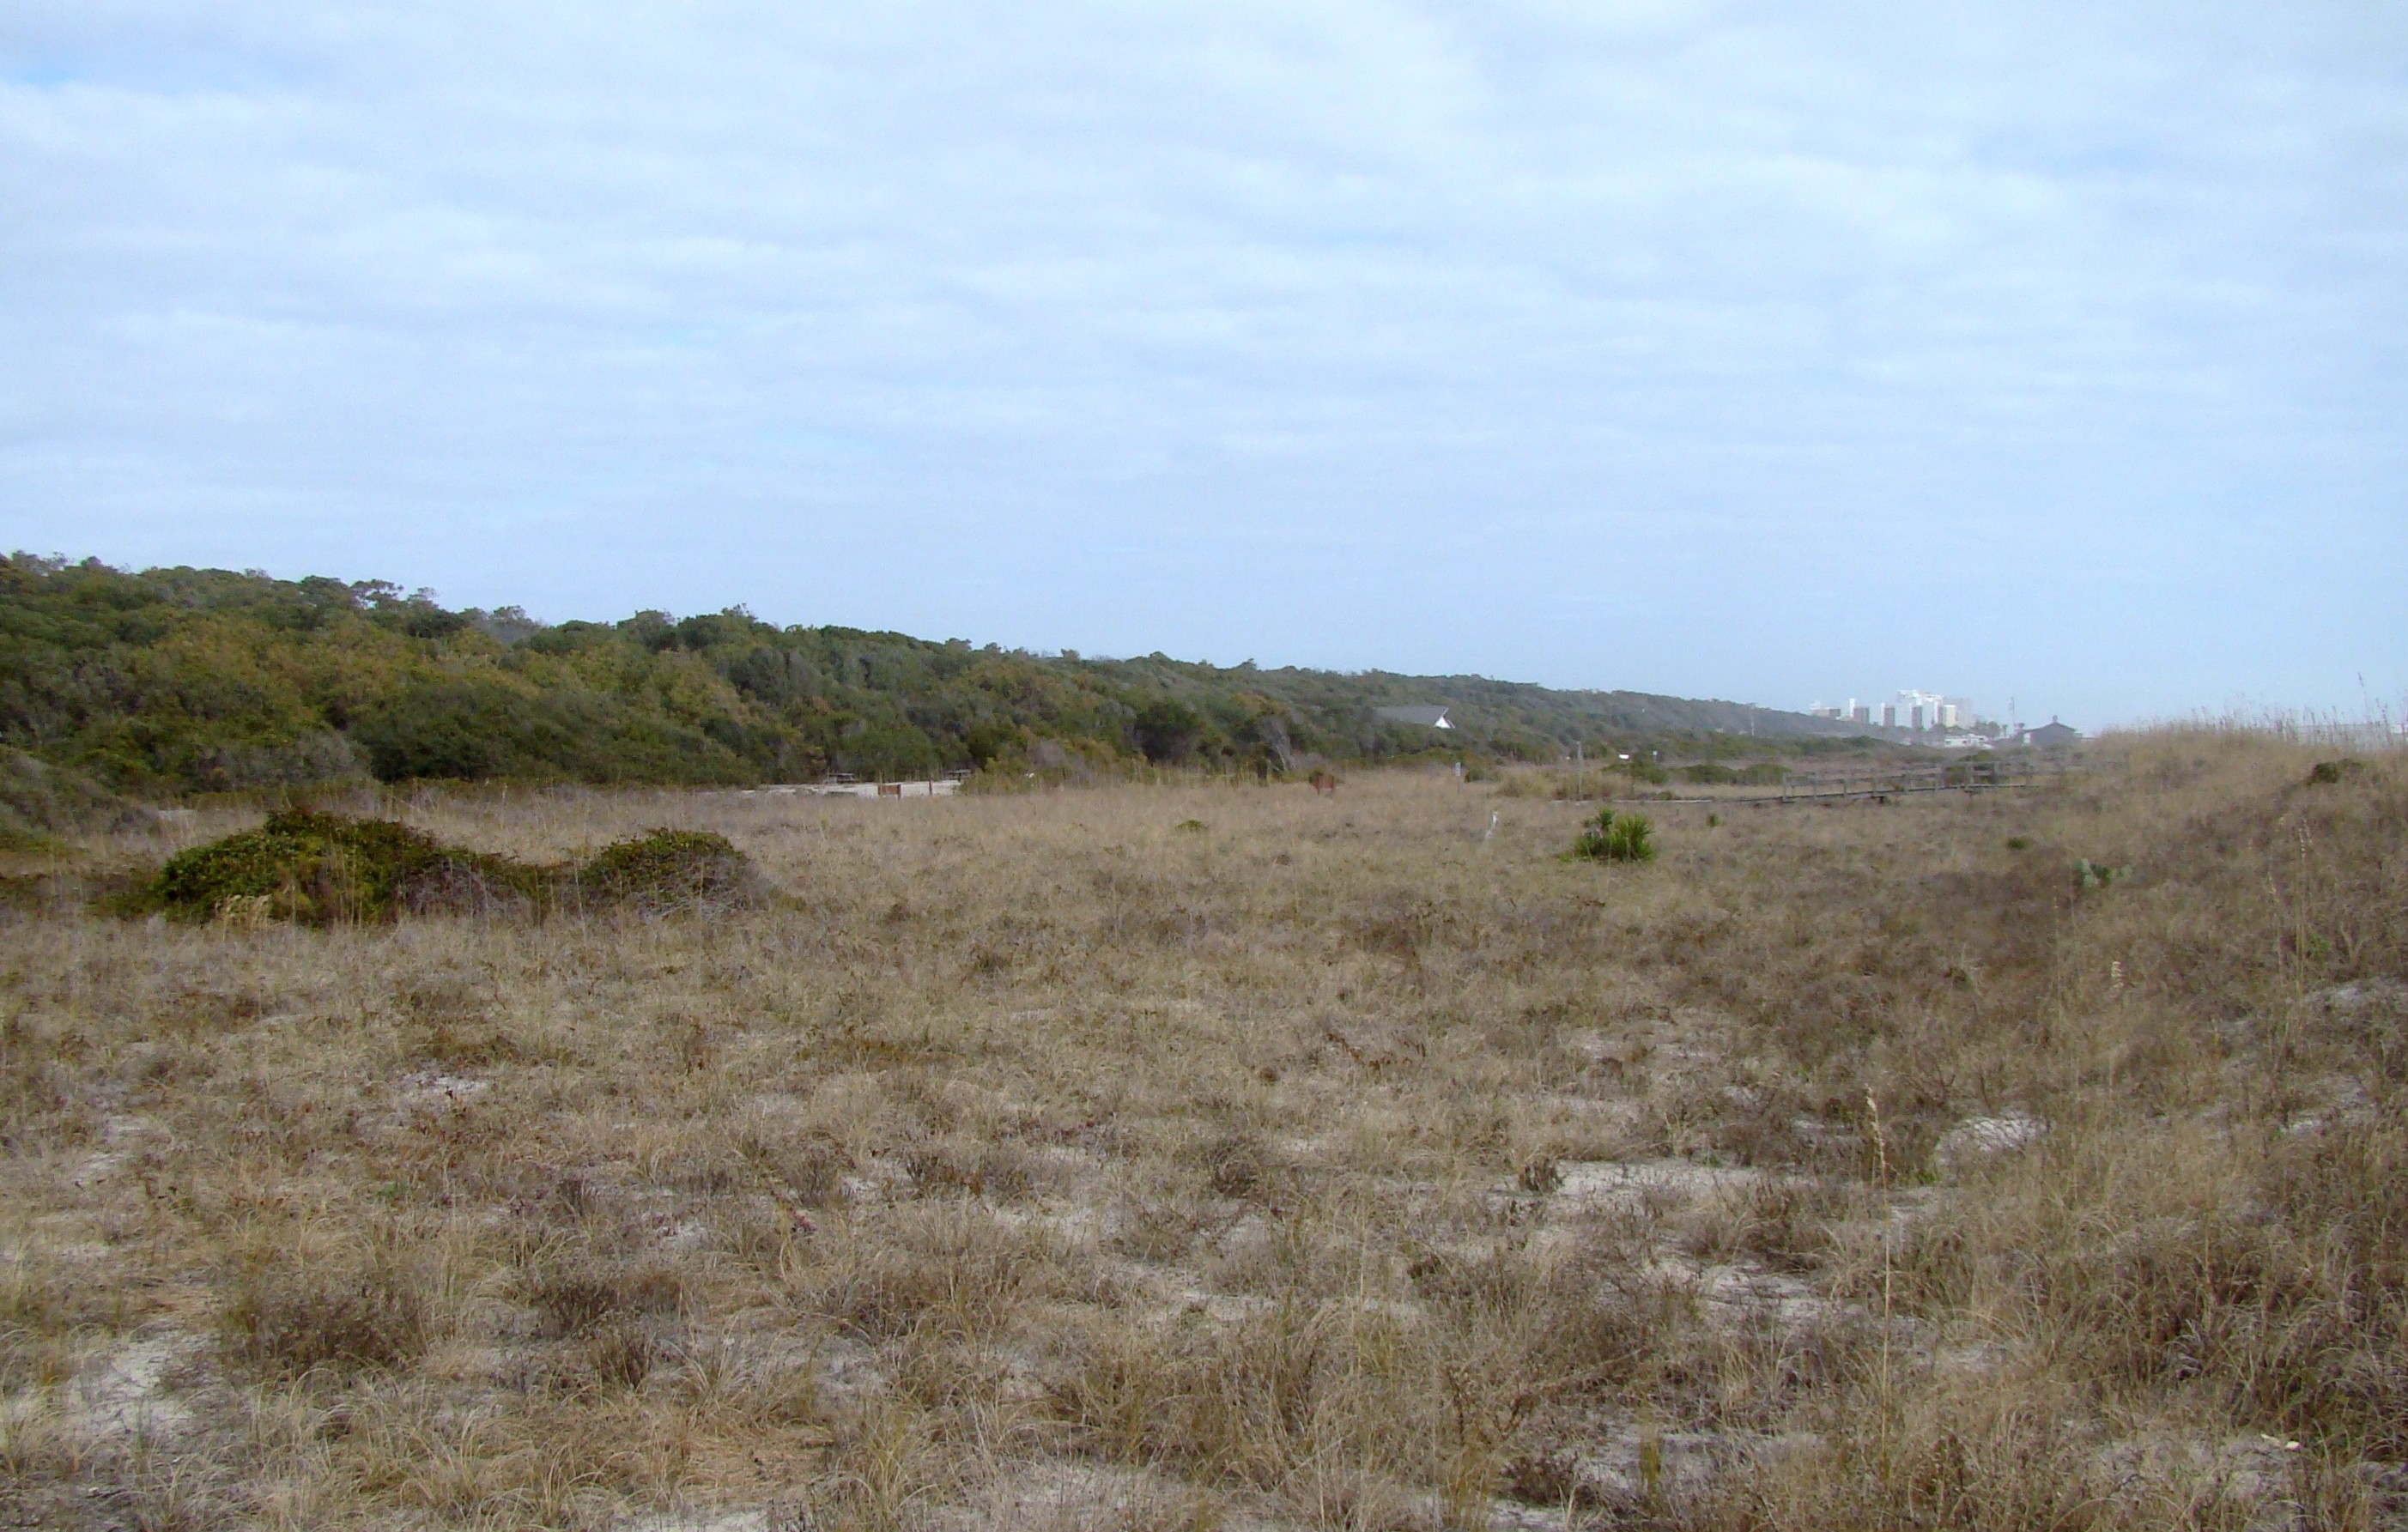 Myrtle Beach State Park back-dunes and maritime forest.